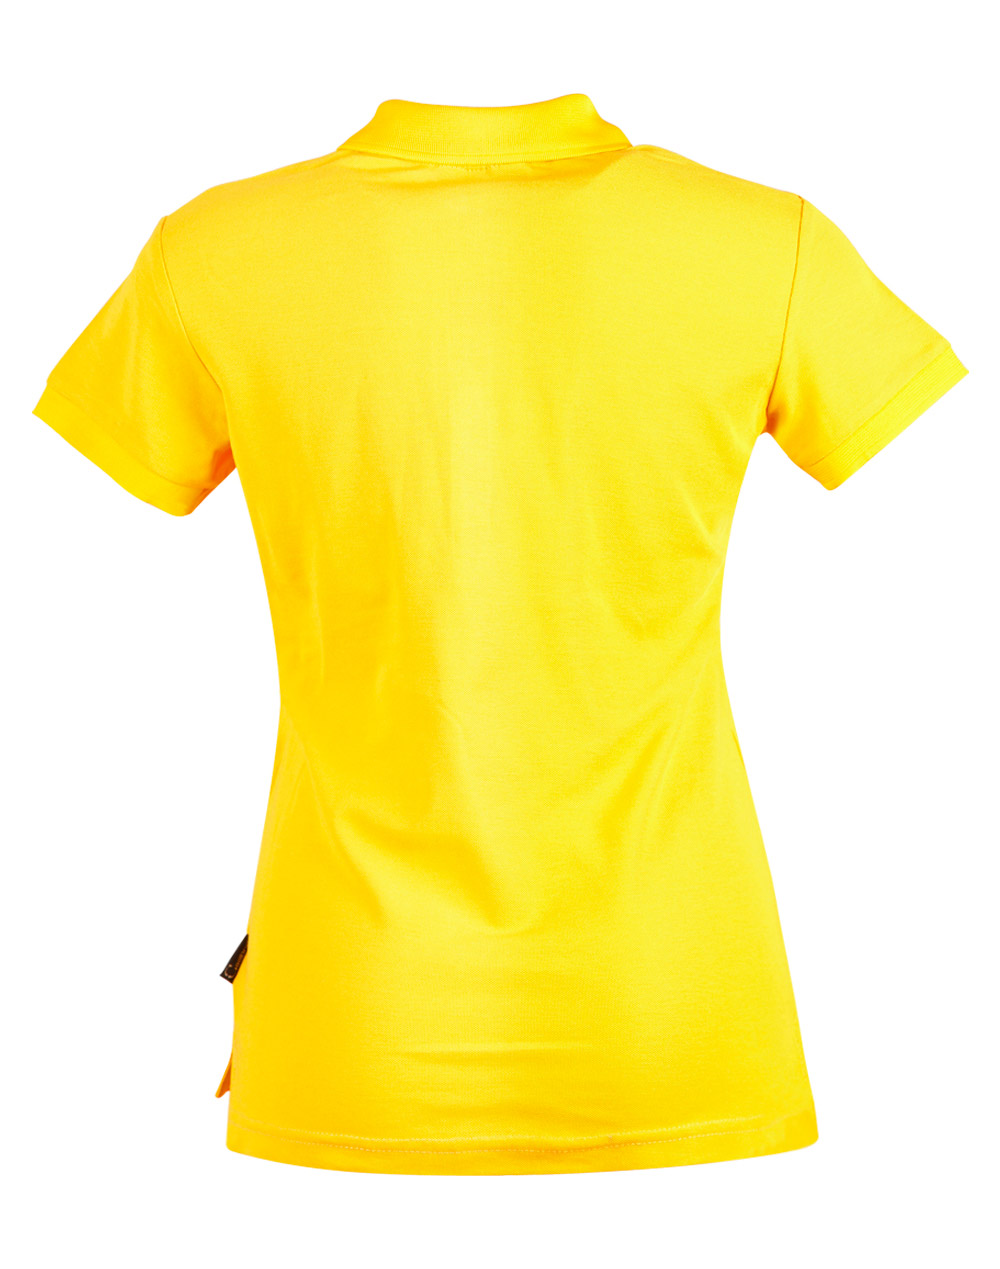 https://s3-ap-southeast-1.amazonaws.com/ws-imgs/POLOSHIRTS/PS64_Gold_Back.jpg